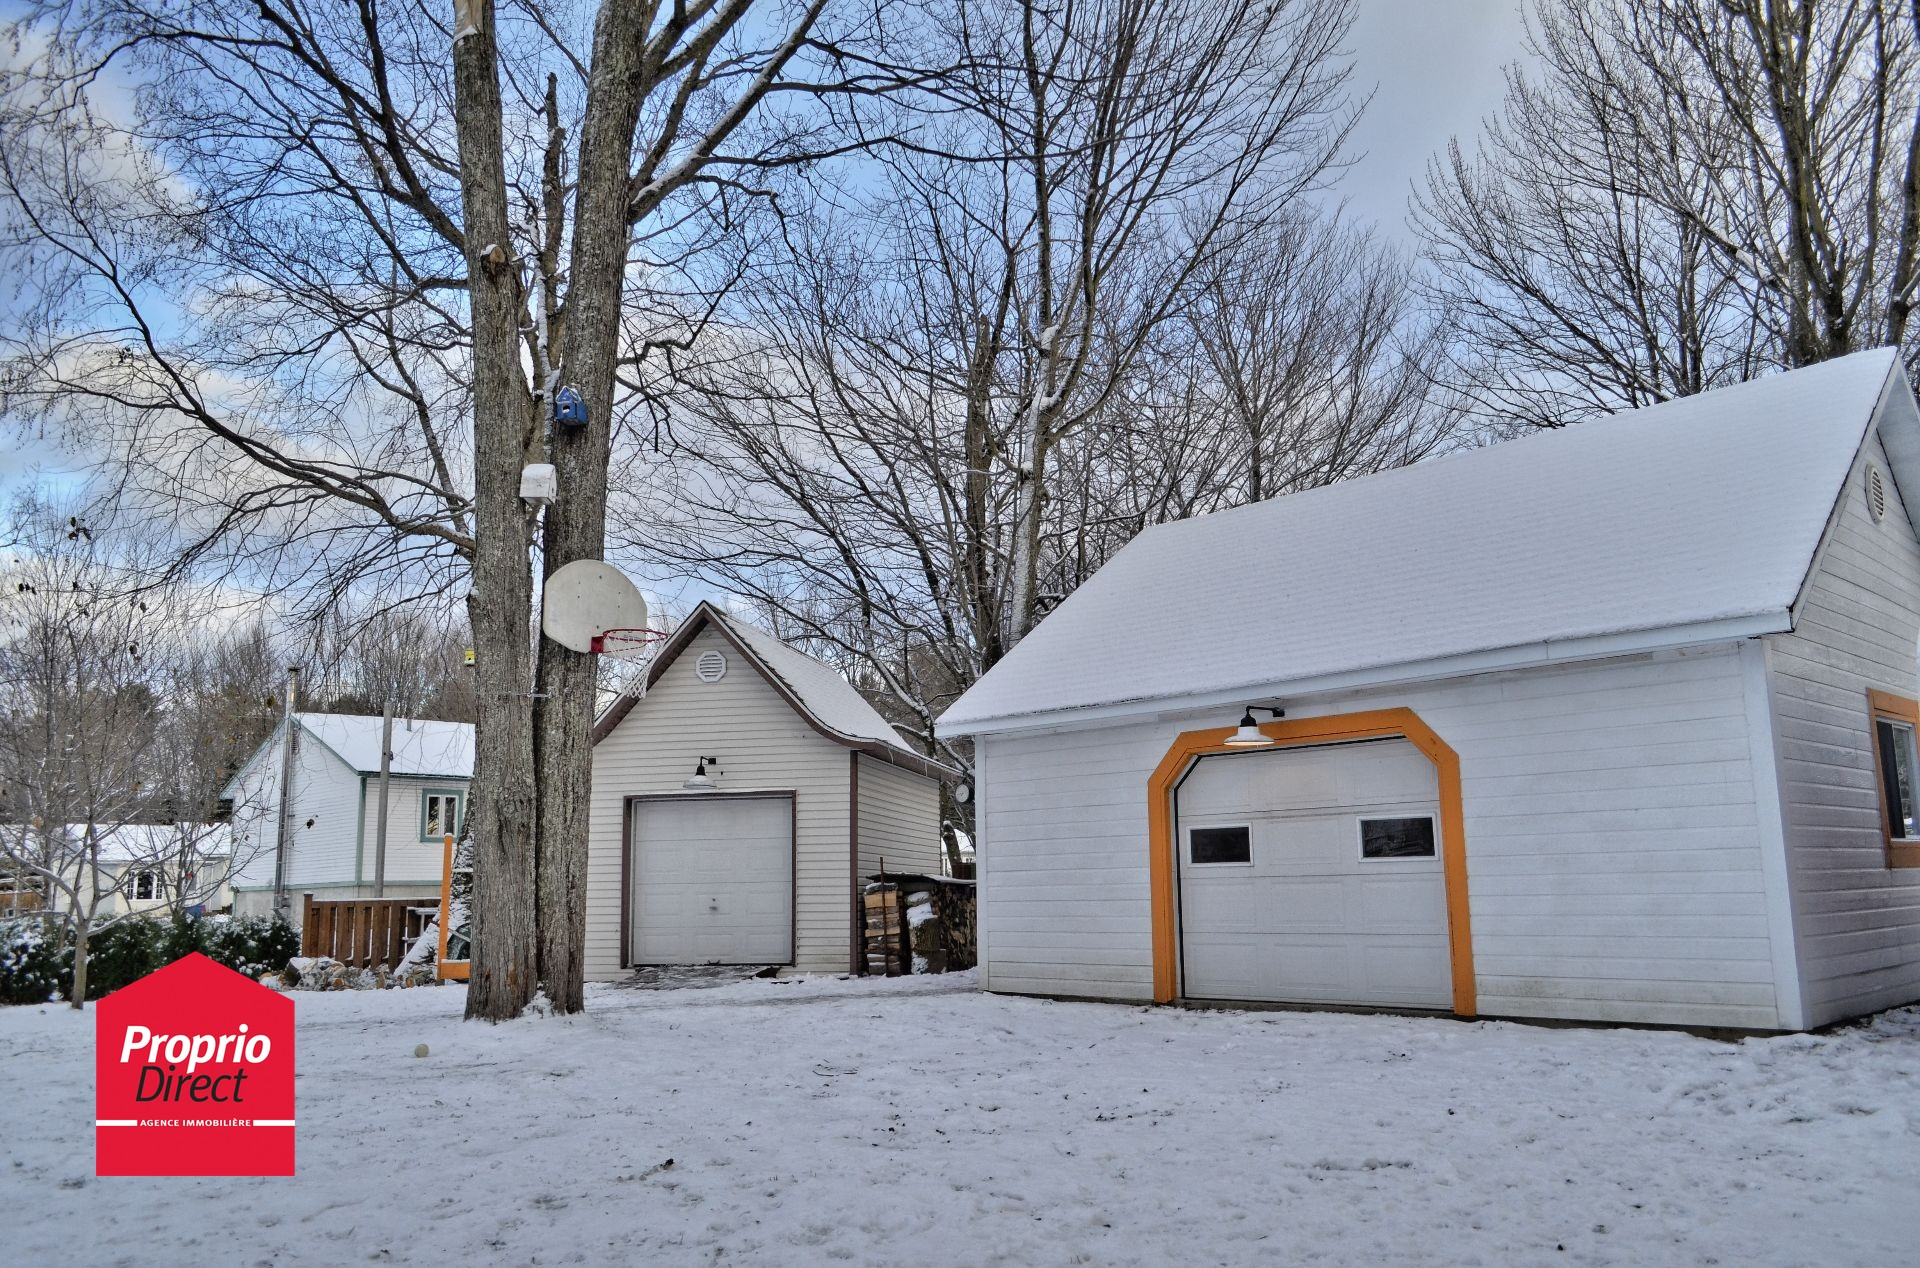 Maison tages vendre 220 8e avenue saint ambroise de for Garage ad saint thurial